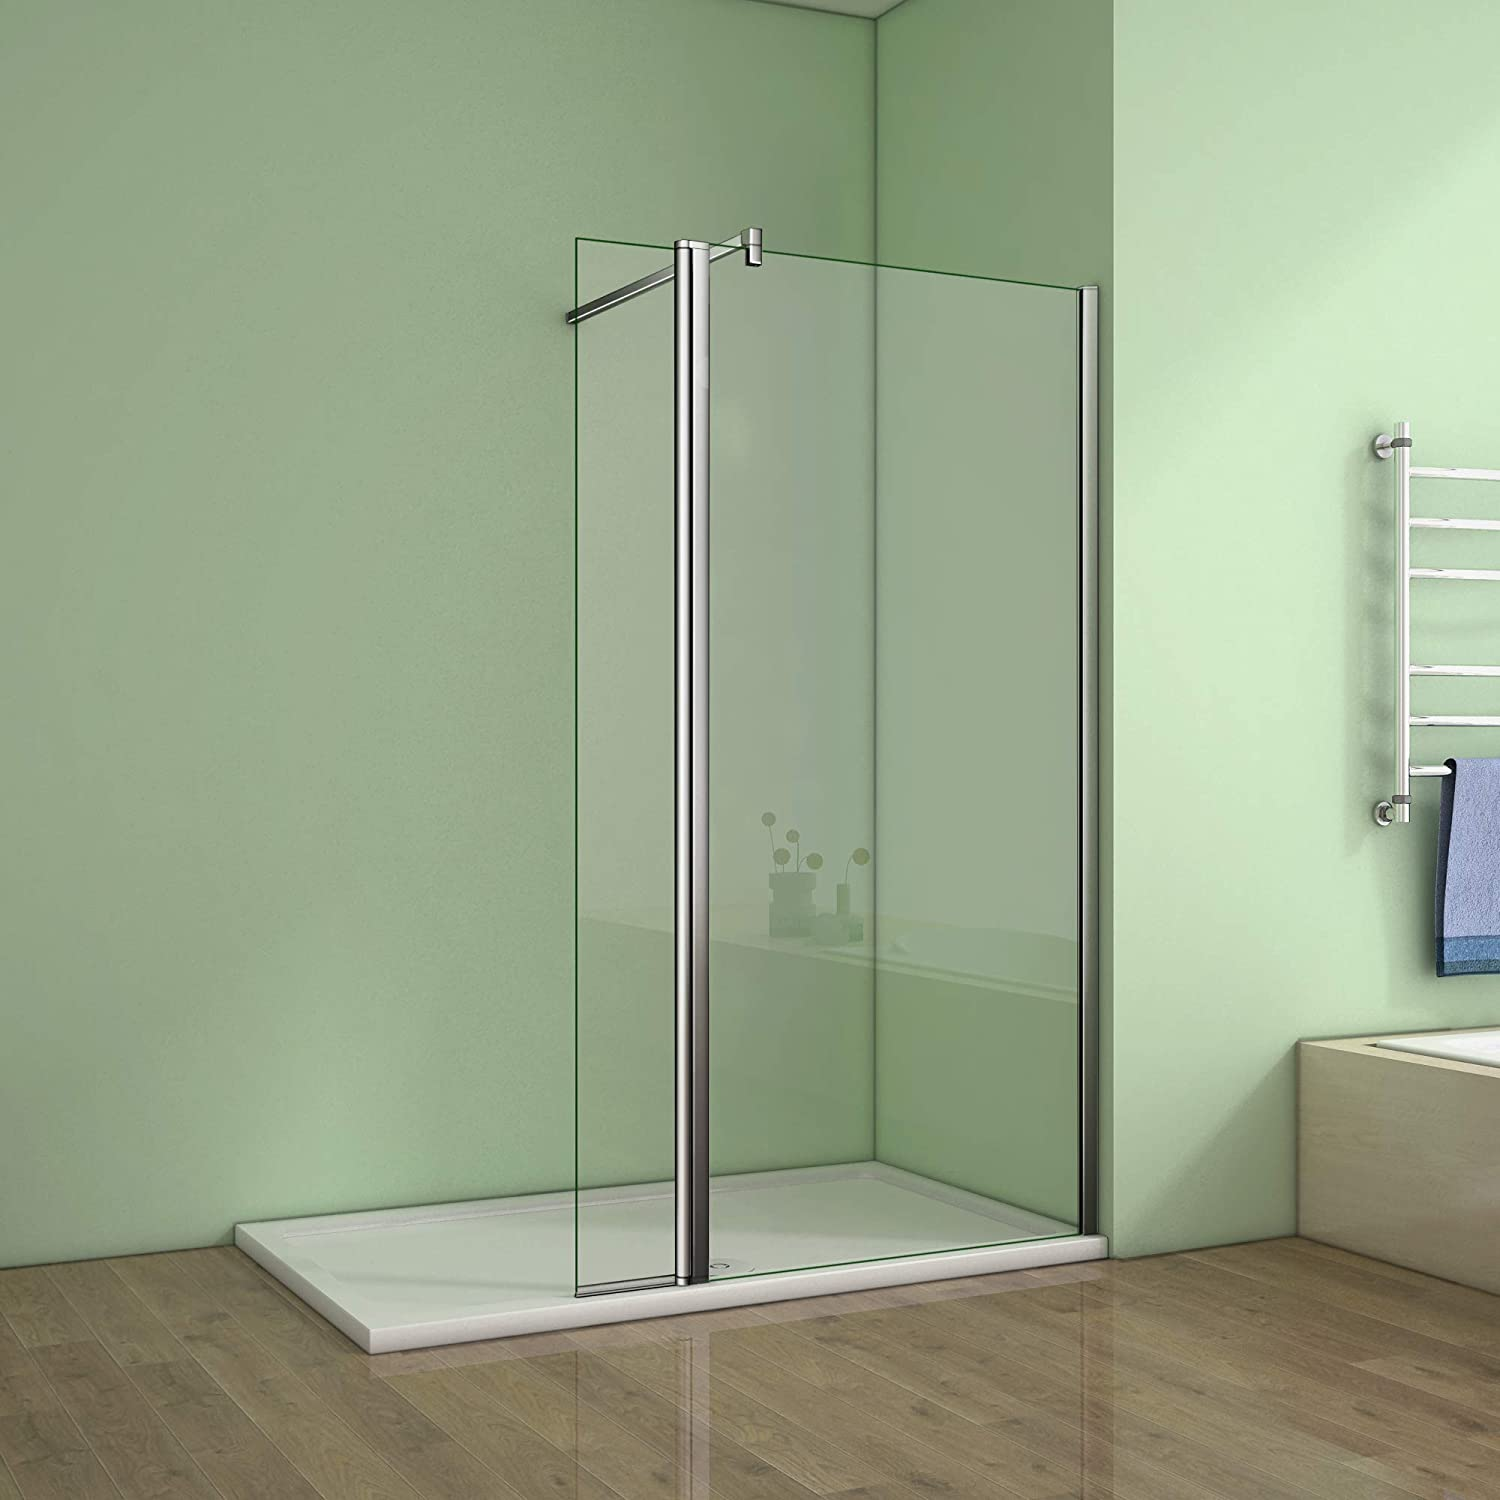 1000mm Walk in Room shower enclosure 8mm Easy Clean Glass Screen door and Tray